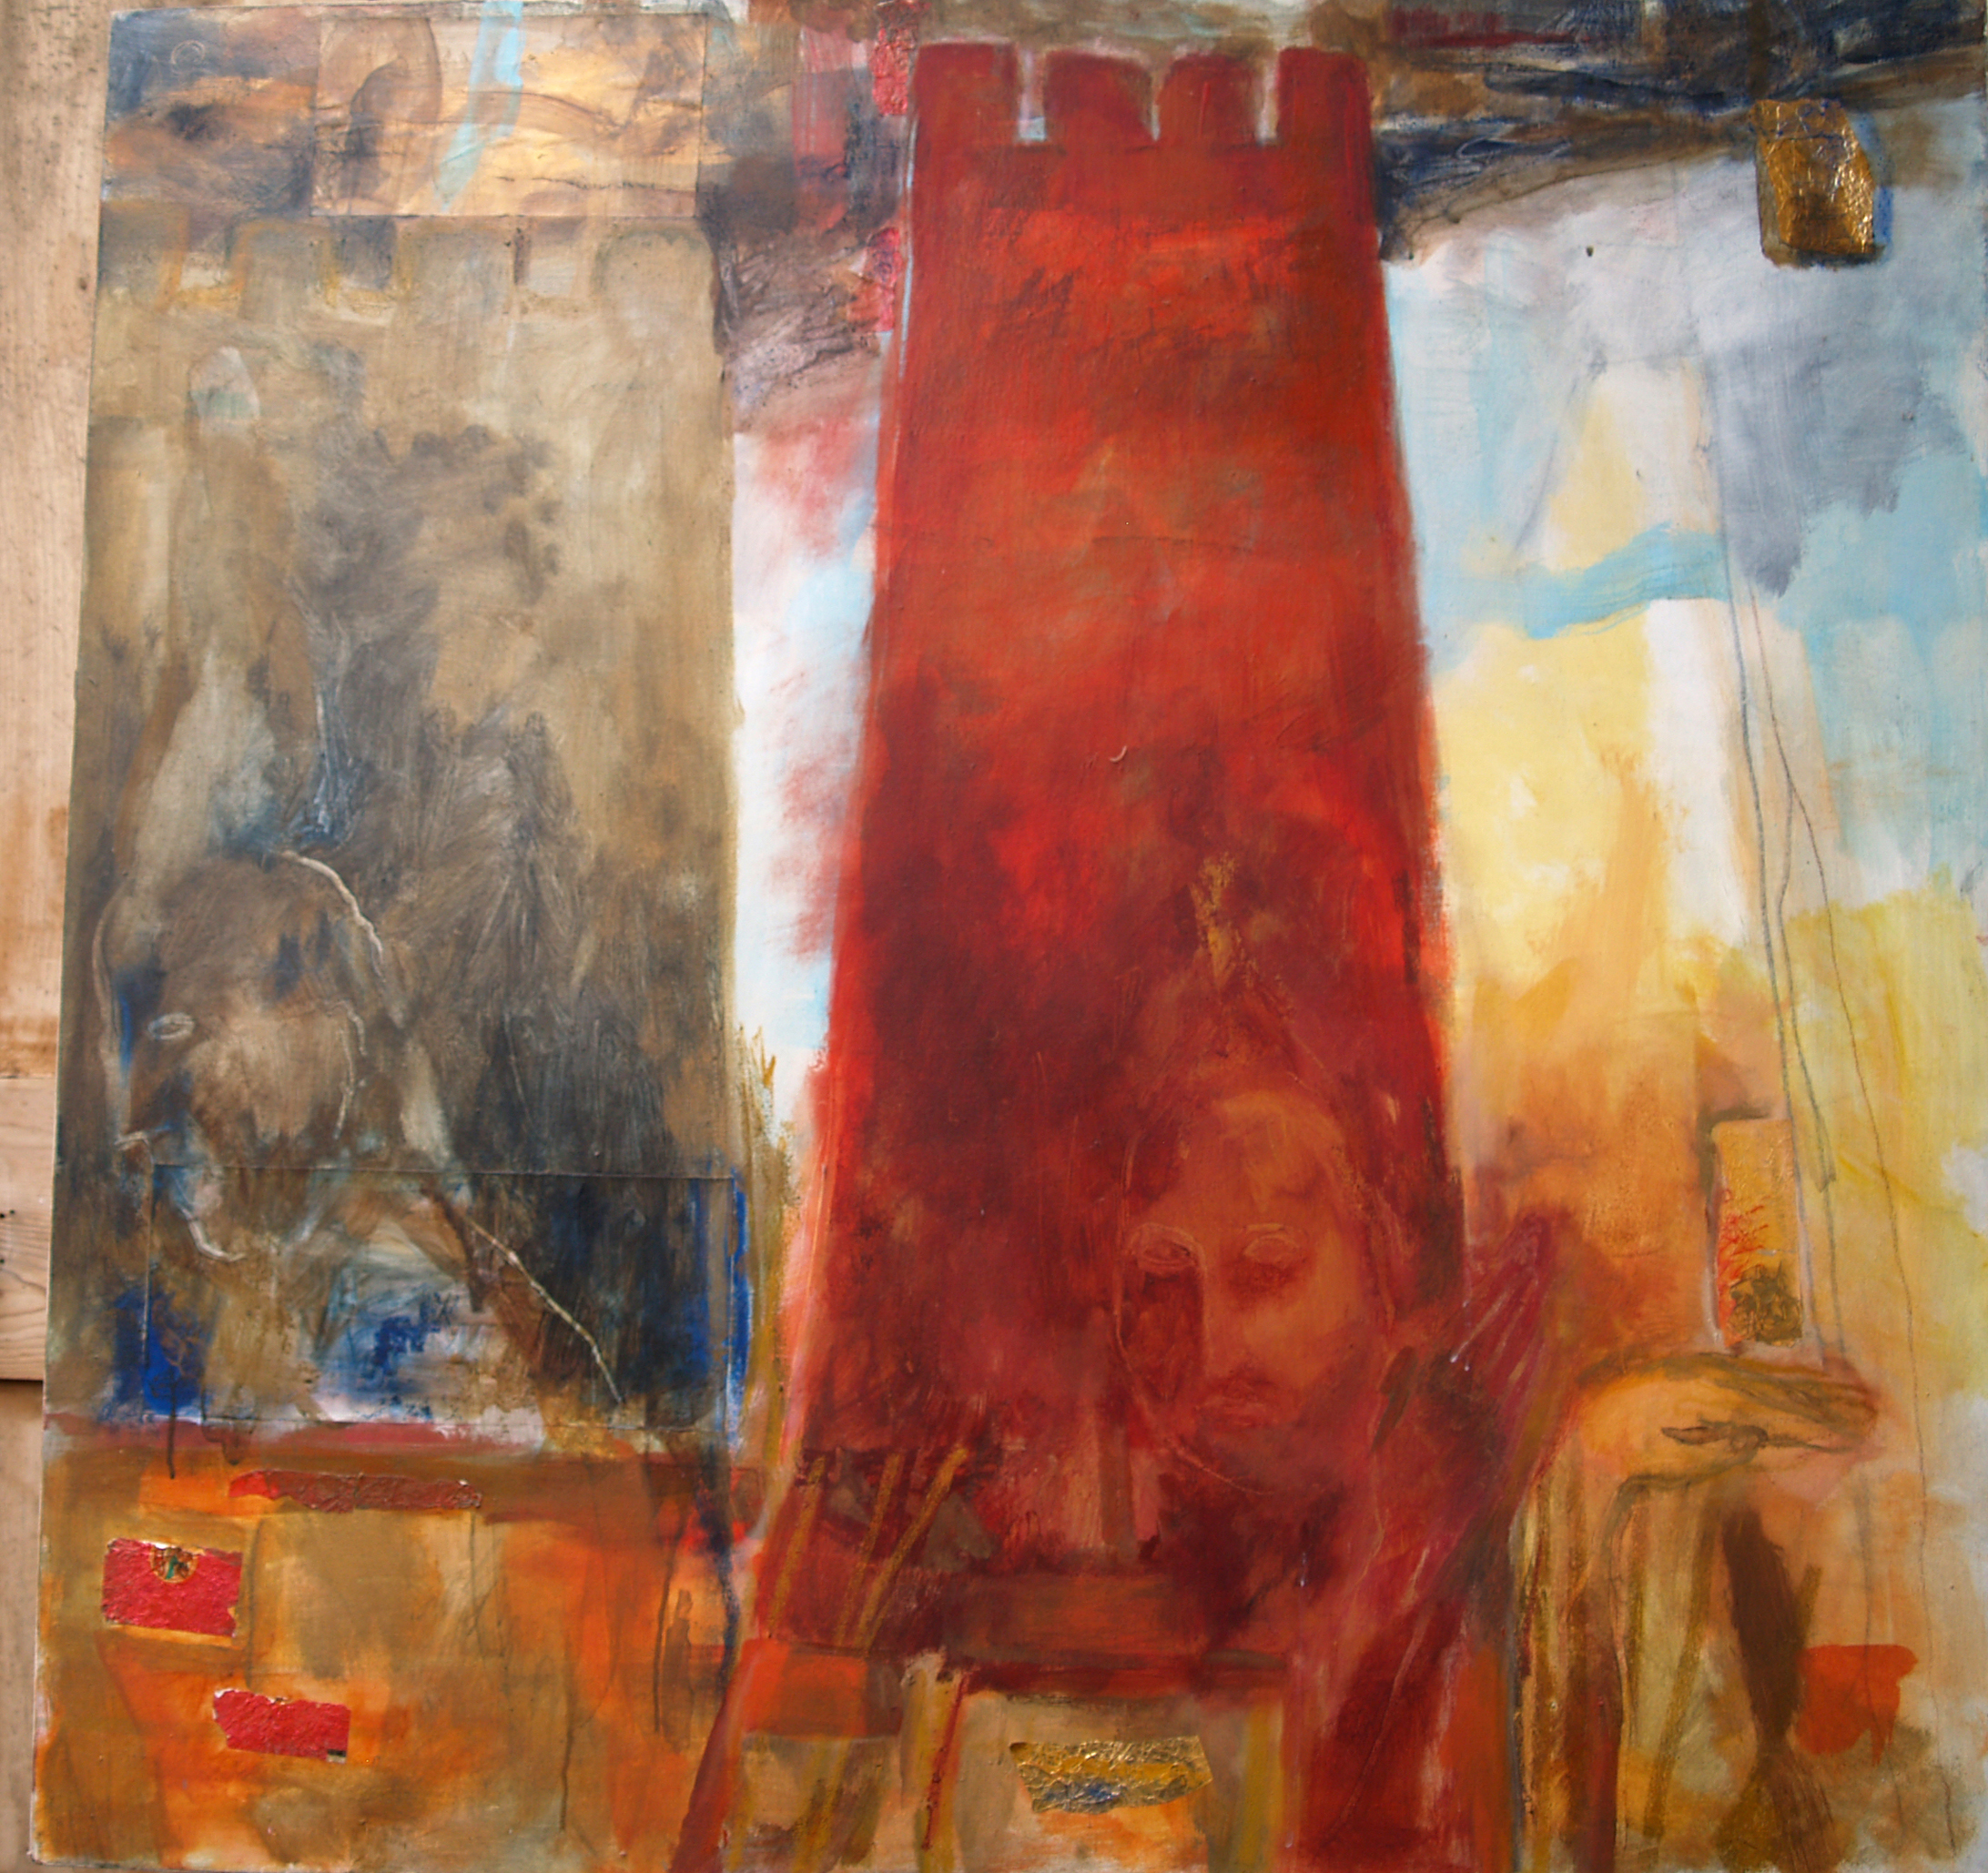 The Sturdy Castle & the Wafting Angel - 1986 - Acrylic, Mixed Media on Canvas - 133 X 133 cm